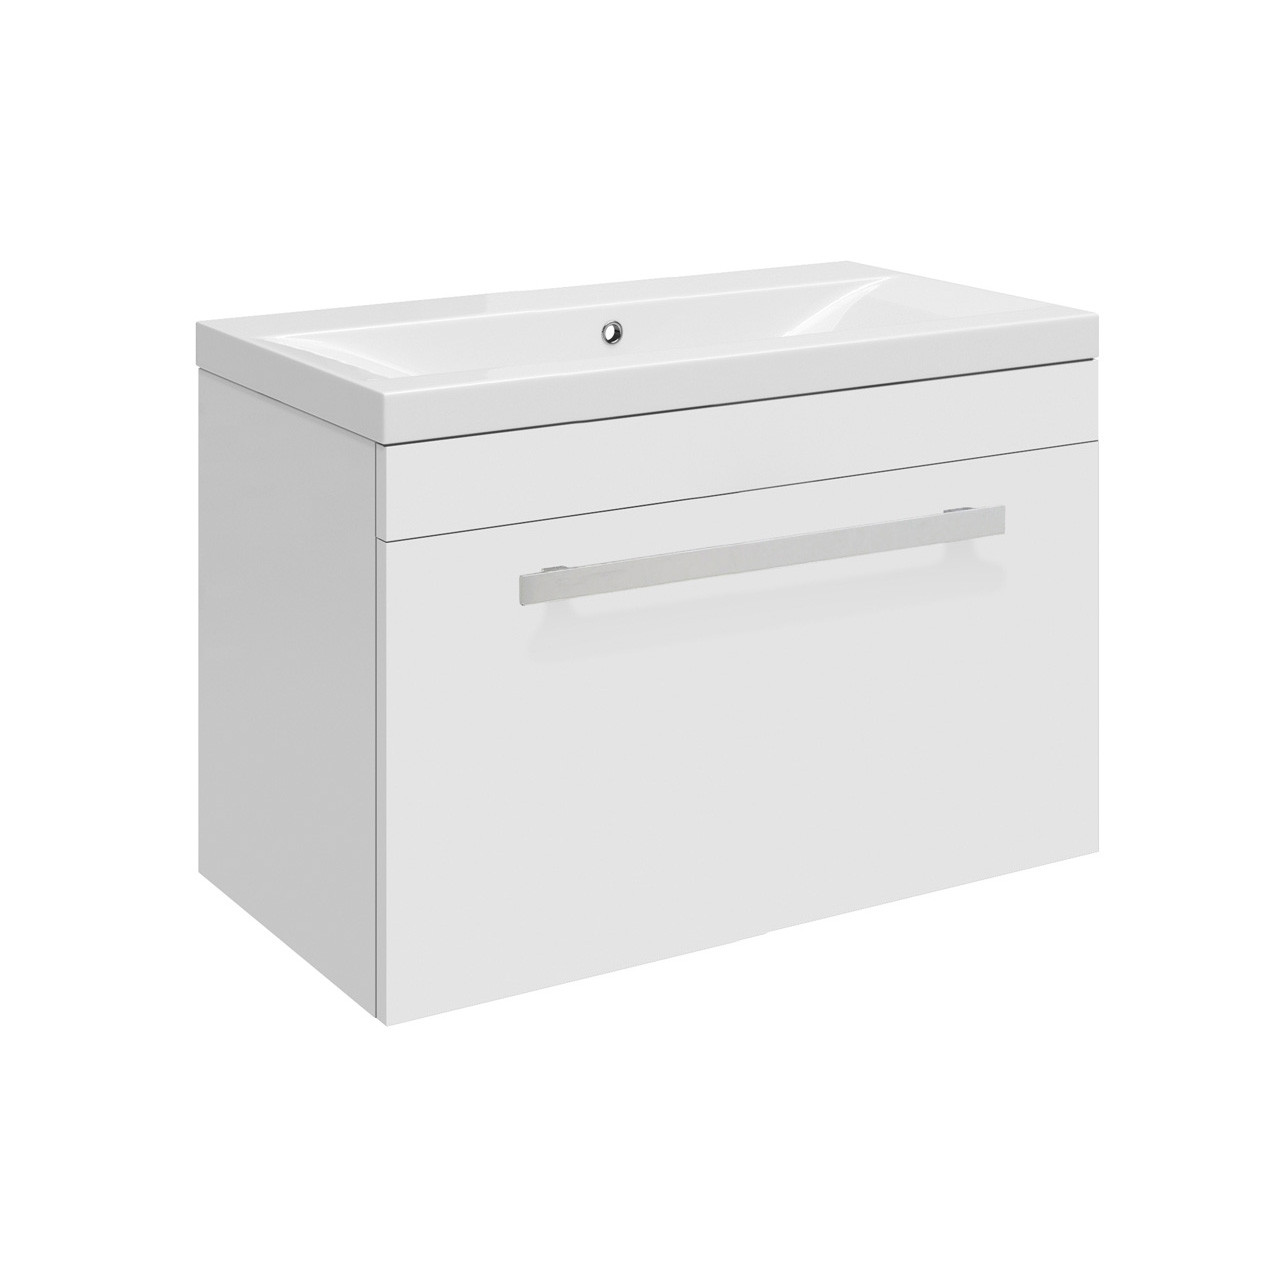 Premier design gloss white wall hung 500mm cabinet 40mm for Bathroom cabinets 500mm wide